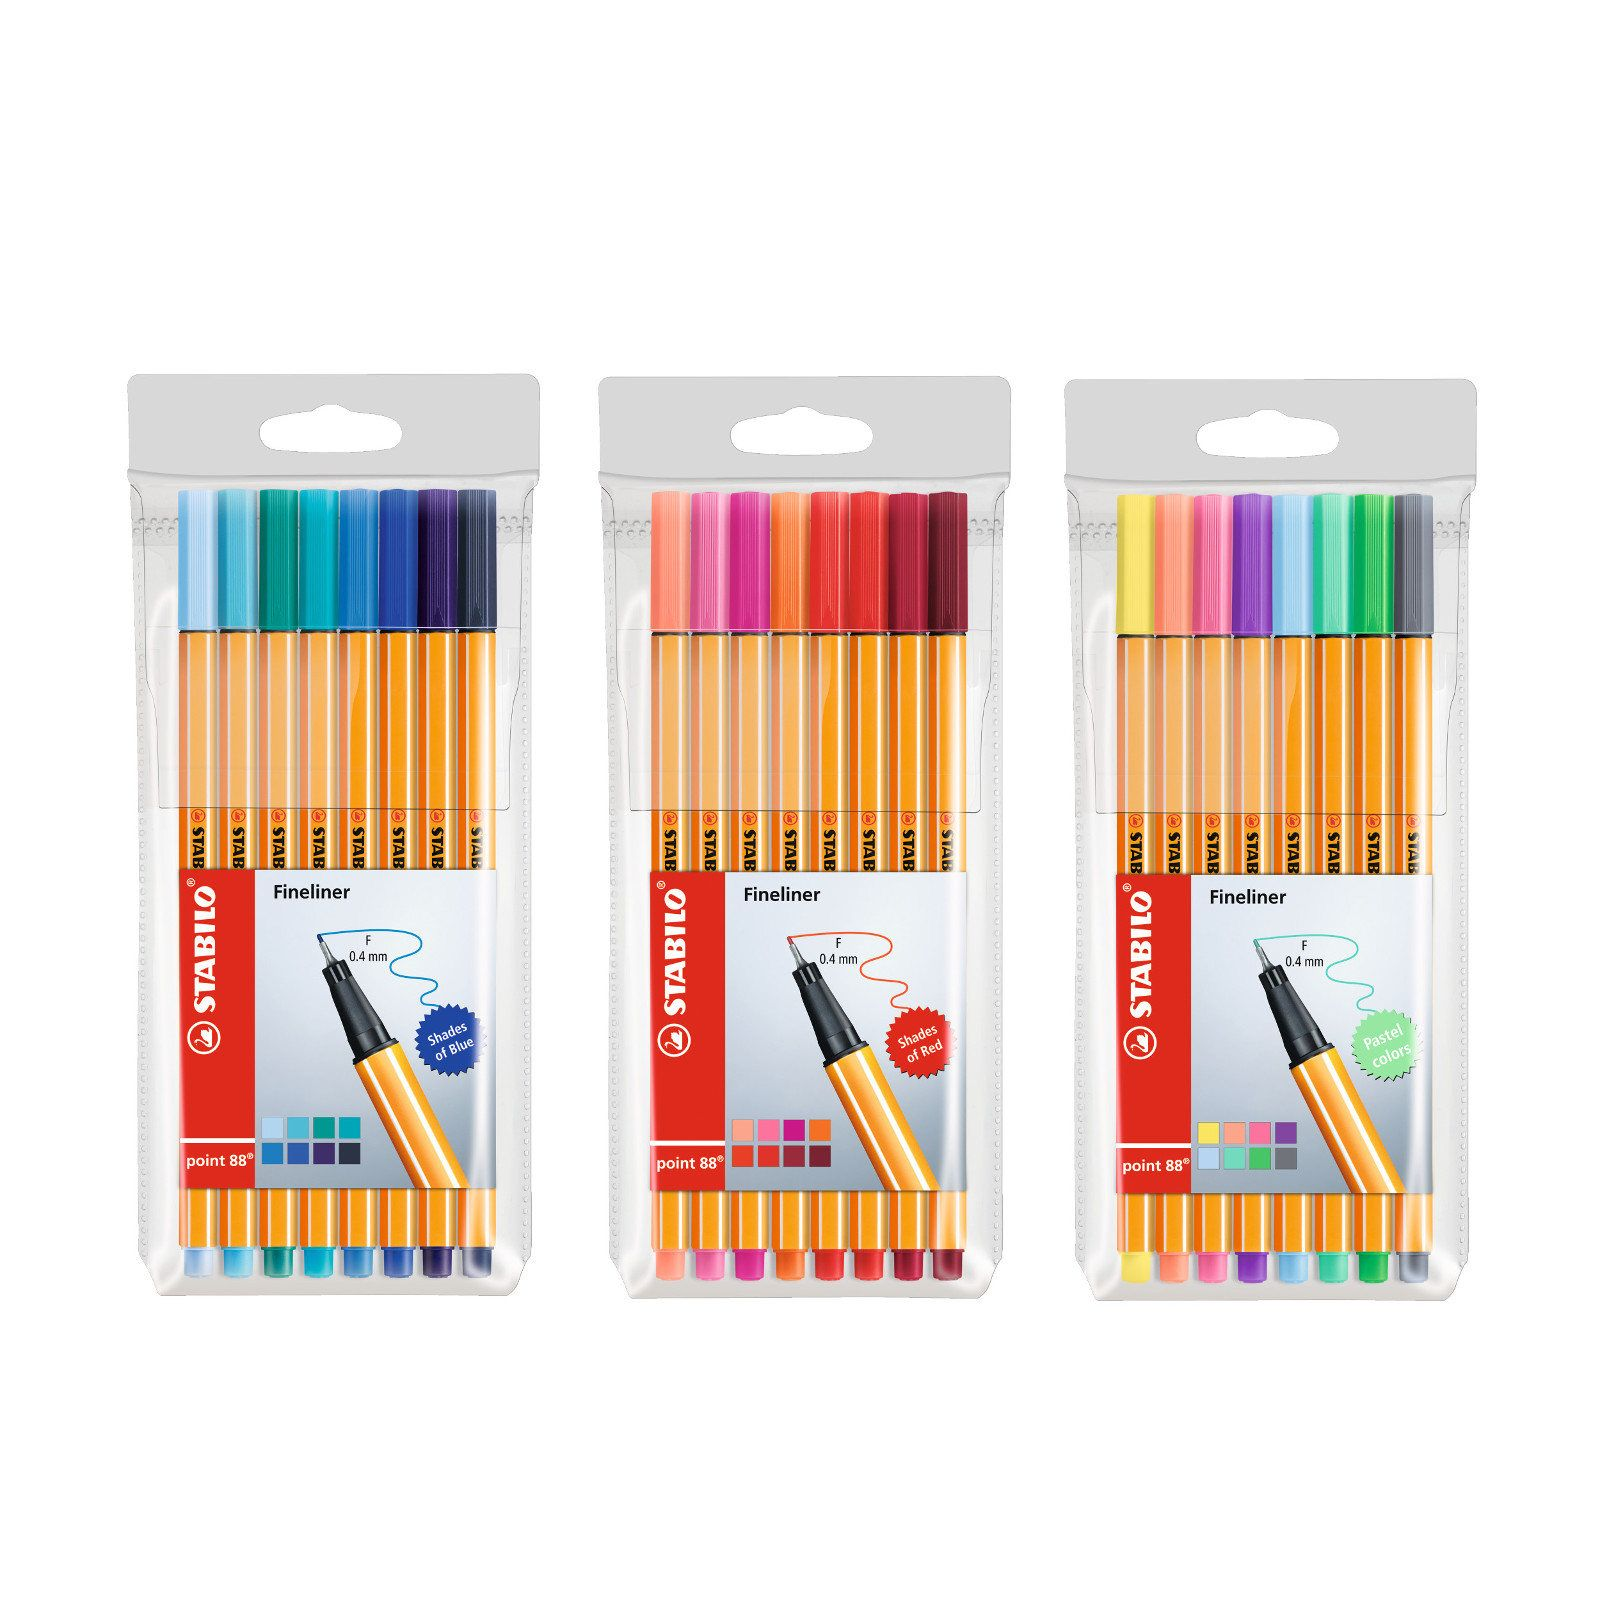 0.4mm Coloured Fineliner Pens 40 PACK Precision Technical Drawing Art Craft Fine